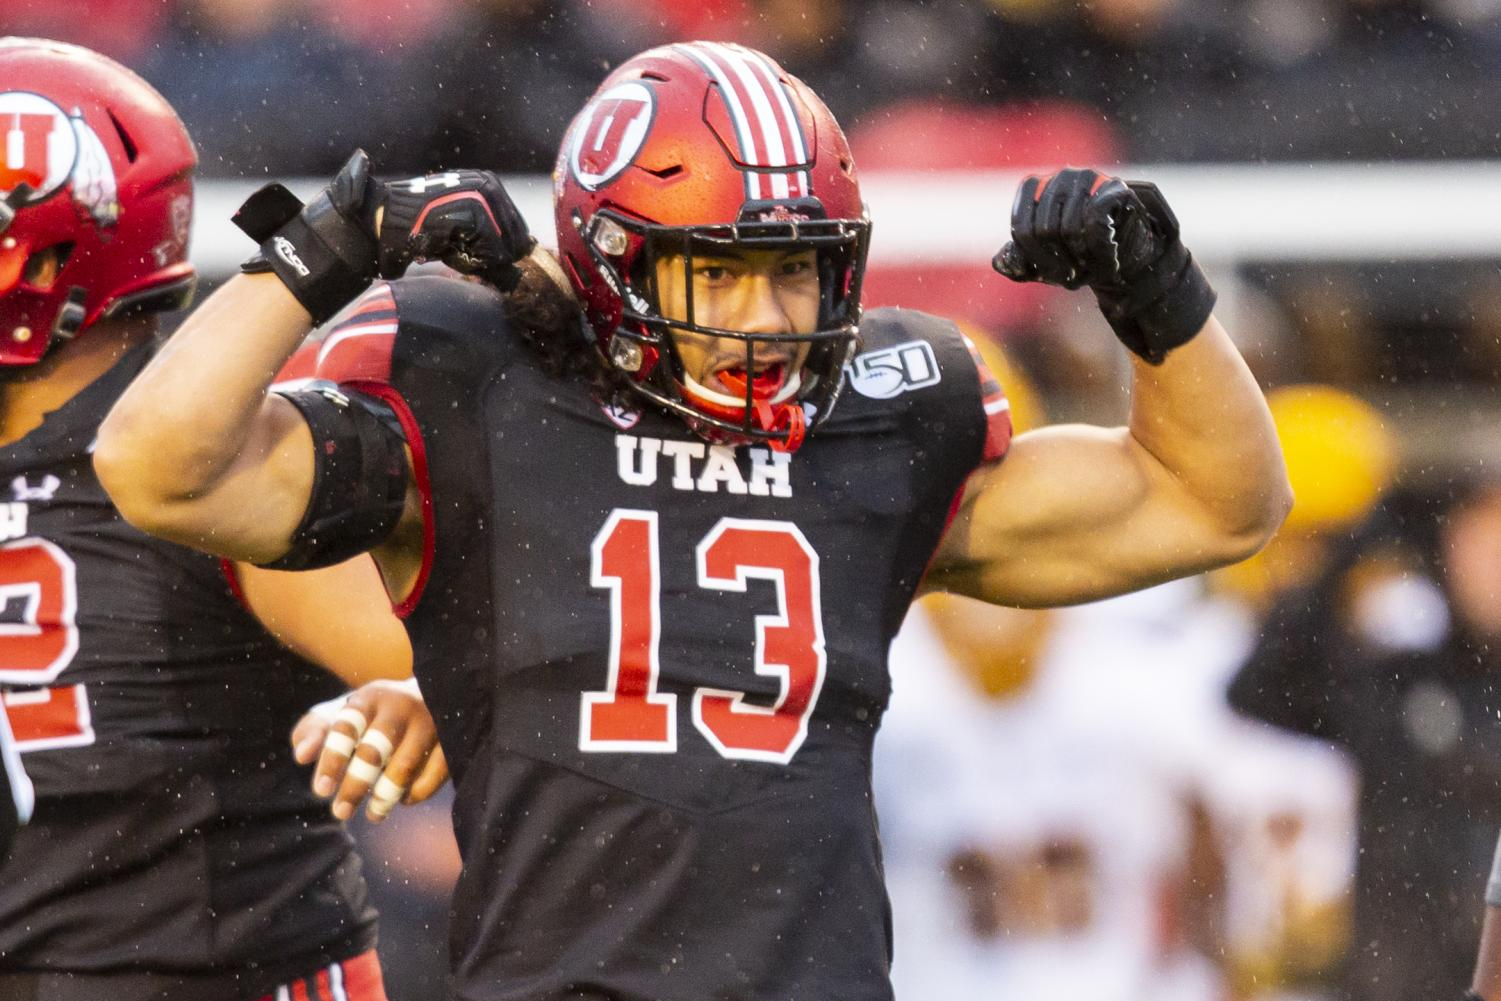 University of Utah senior linebacker Francis Bernard (13) celebrating after tackling Arizona State University freshman quarterback Jayden Daniels (5) in an NCAA Football game vs. Arizona State University at Rice-Eccles Stadium in Salt Lake City, UT on Saturday October 19, 2019.(Photo by Curtis Lin | Daily Utah Chronicle)